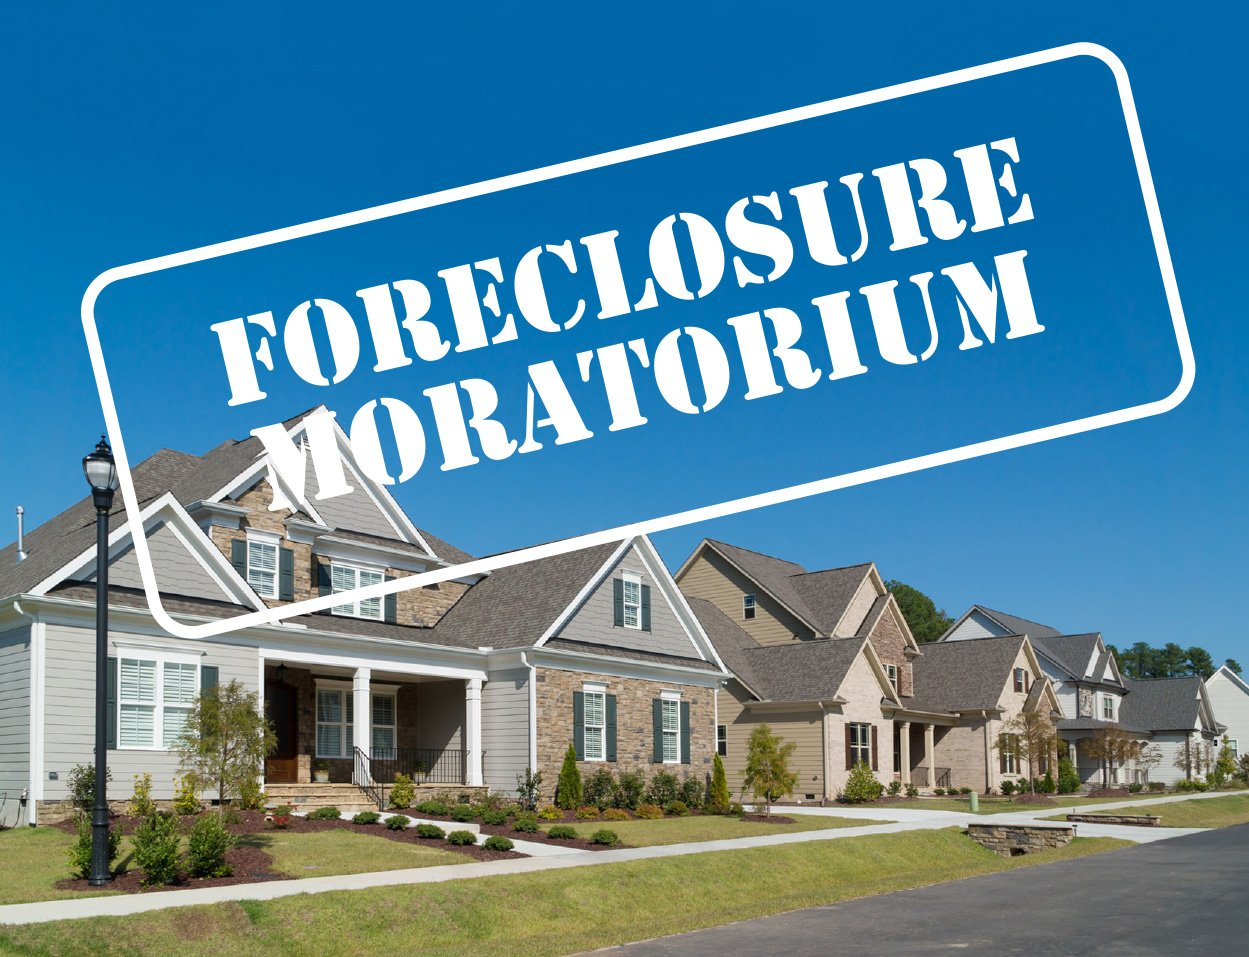 Graphic representing foreclosure moratorium showing houses in the background